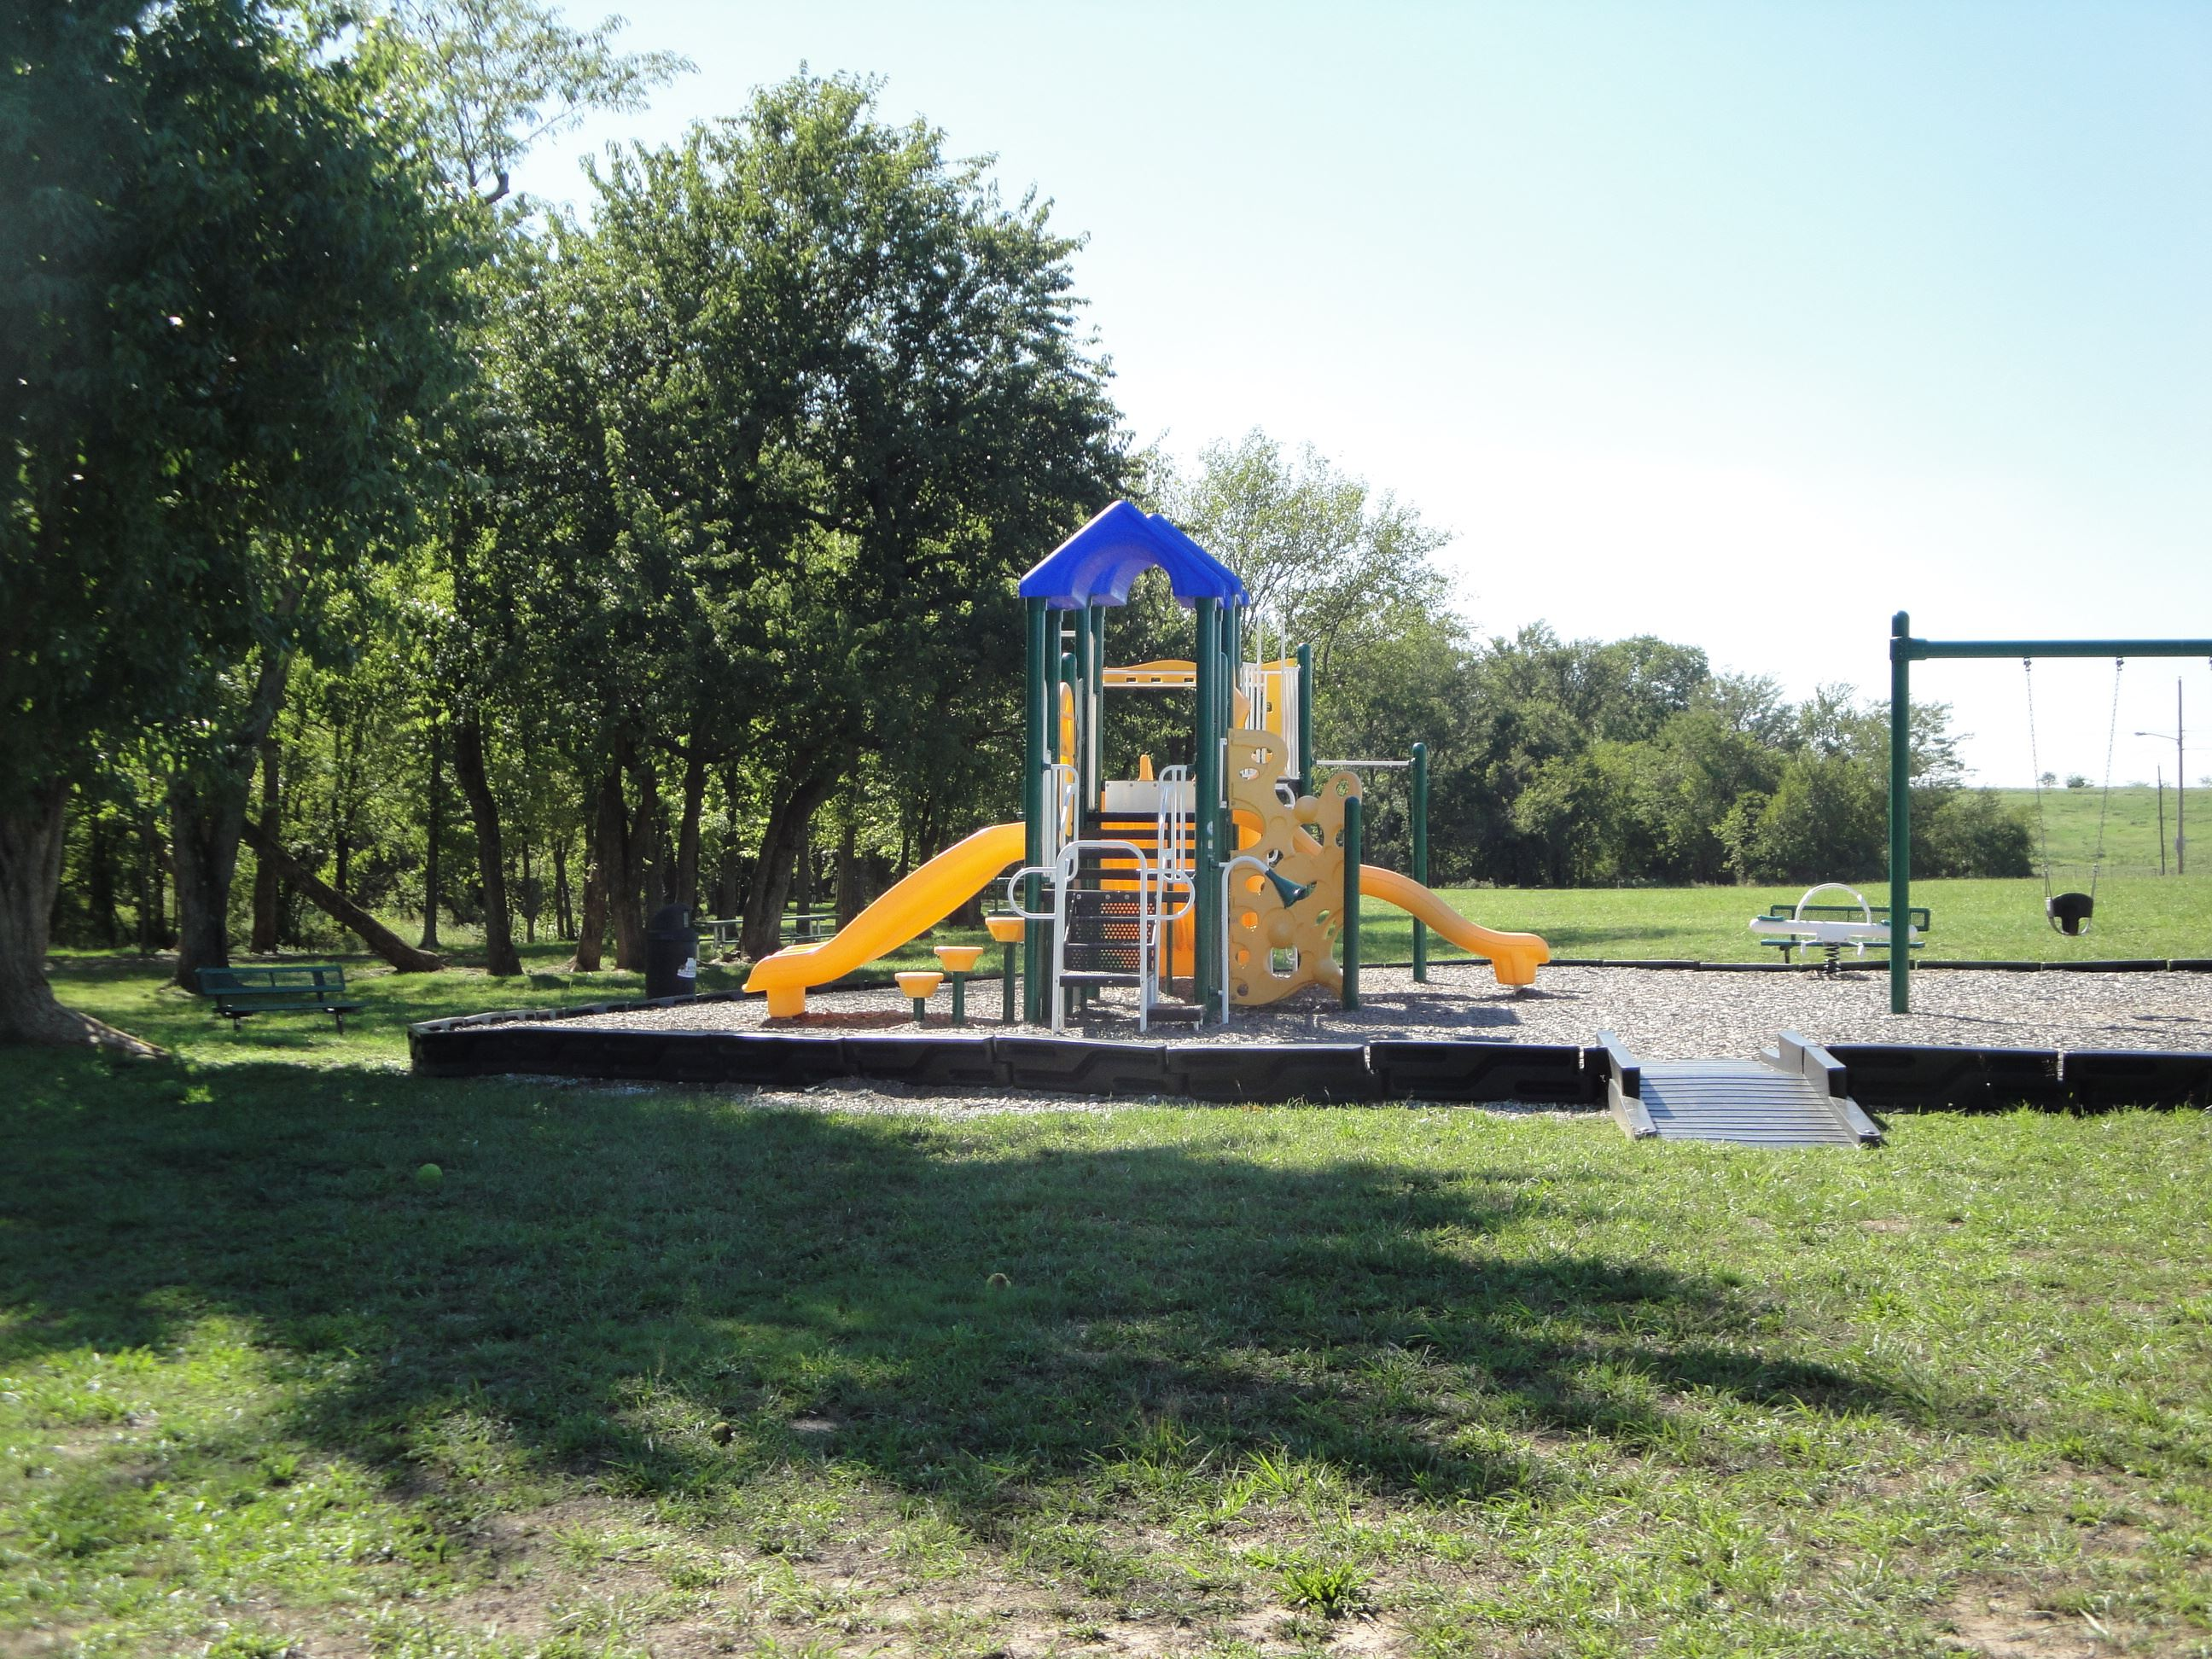 Brookline Park Playground Equipment